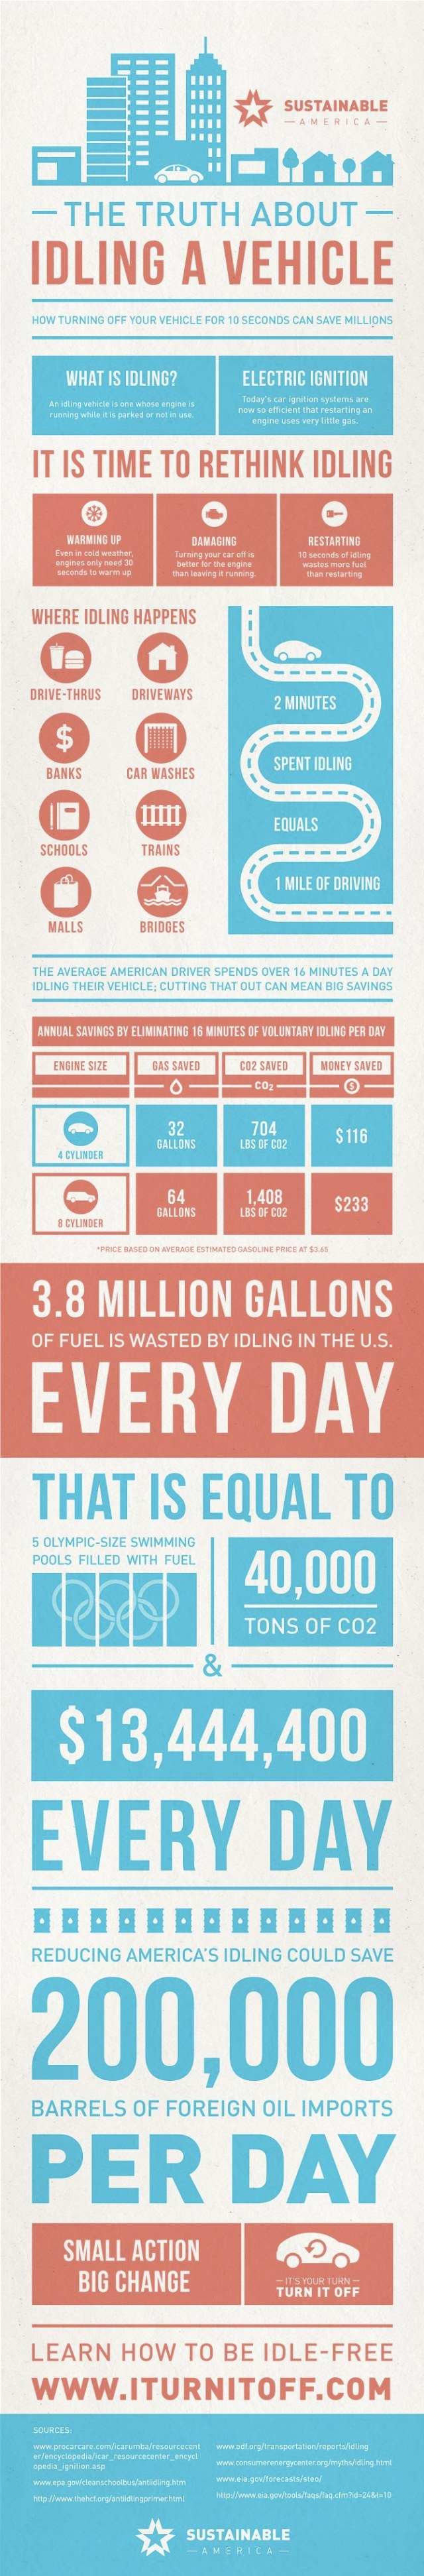 Image: Sustainable America via Upworthy.com